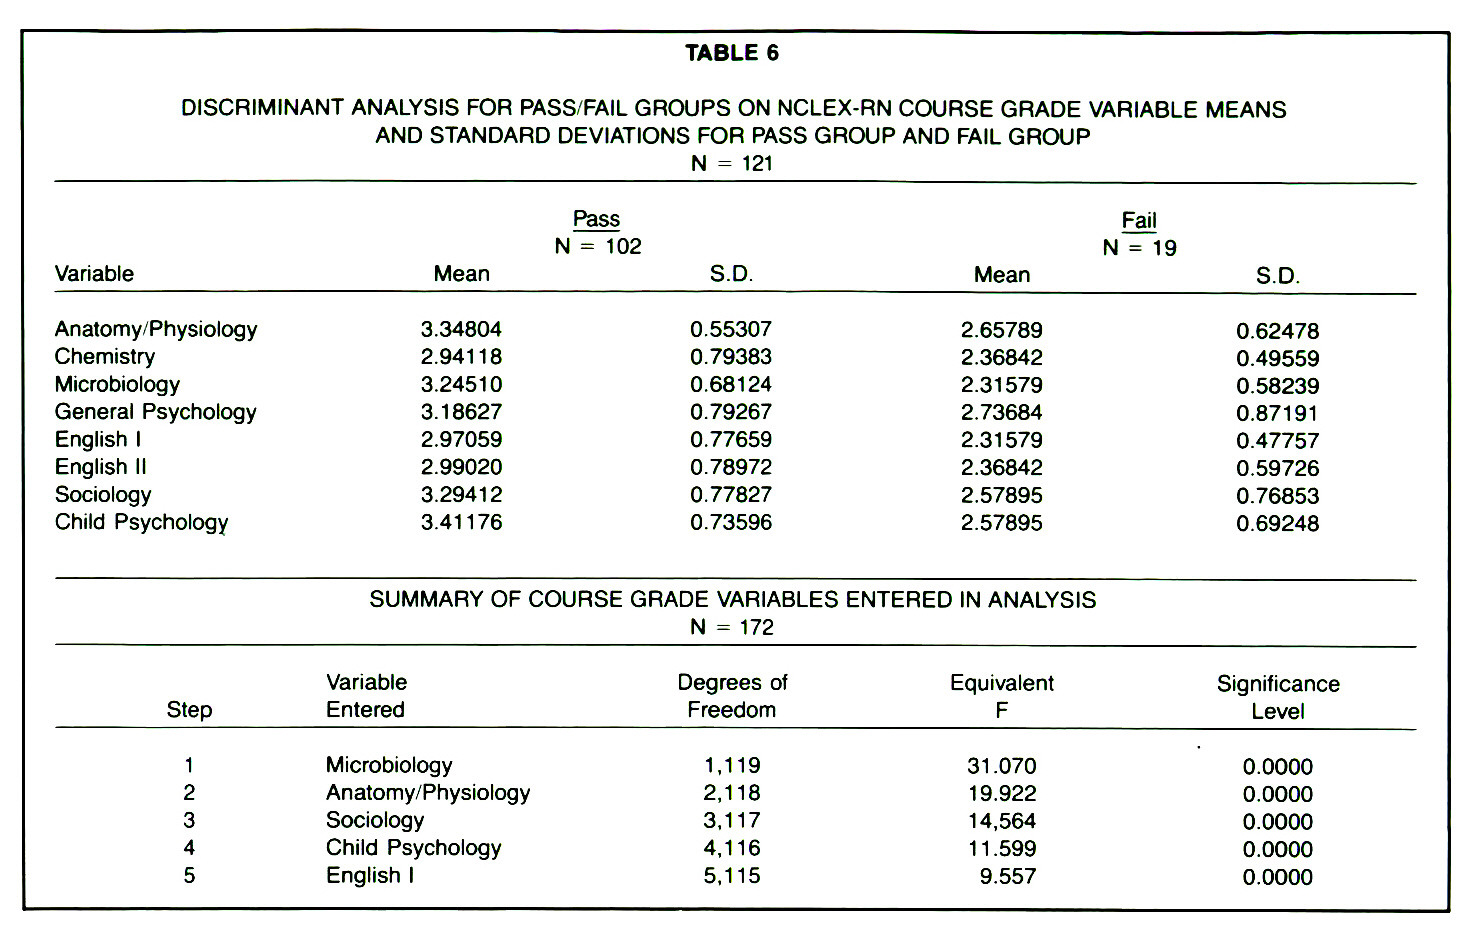 TABLE 6DISCRIMINANT ANALYSIS FOR PASS/FAIL GROUPS ON NCLEX-RN COURSE GRADE VARIABLE MEANS AND STANDARD DEVIATIONS FOR PASS GROUP AND FAIL GROUP N = 121